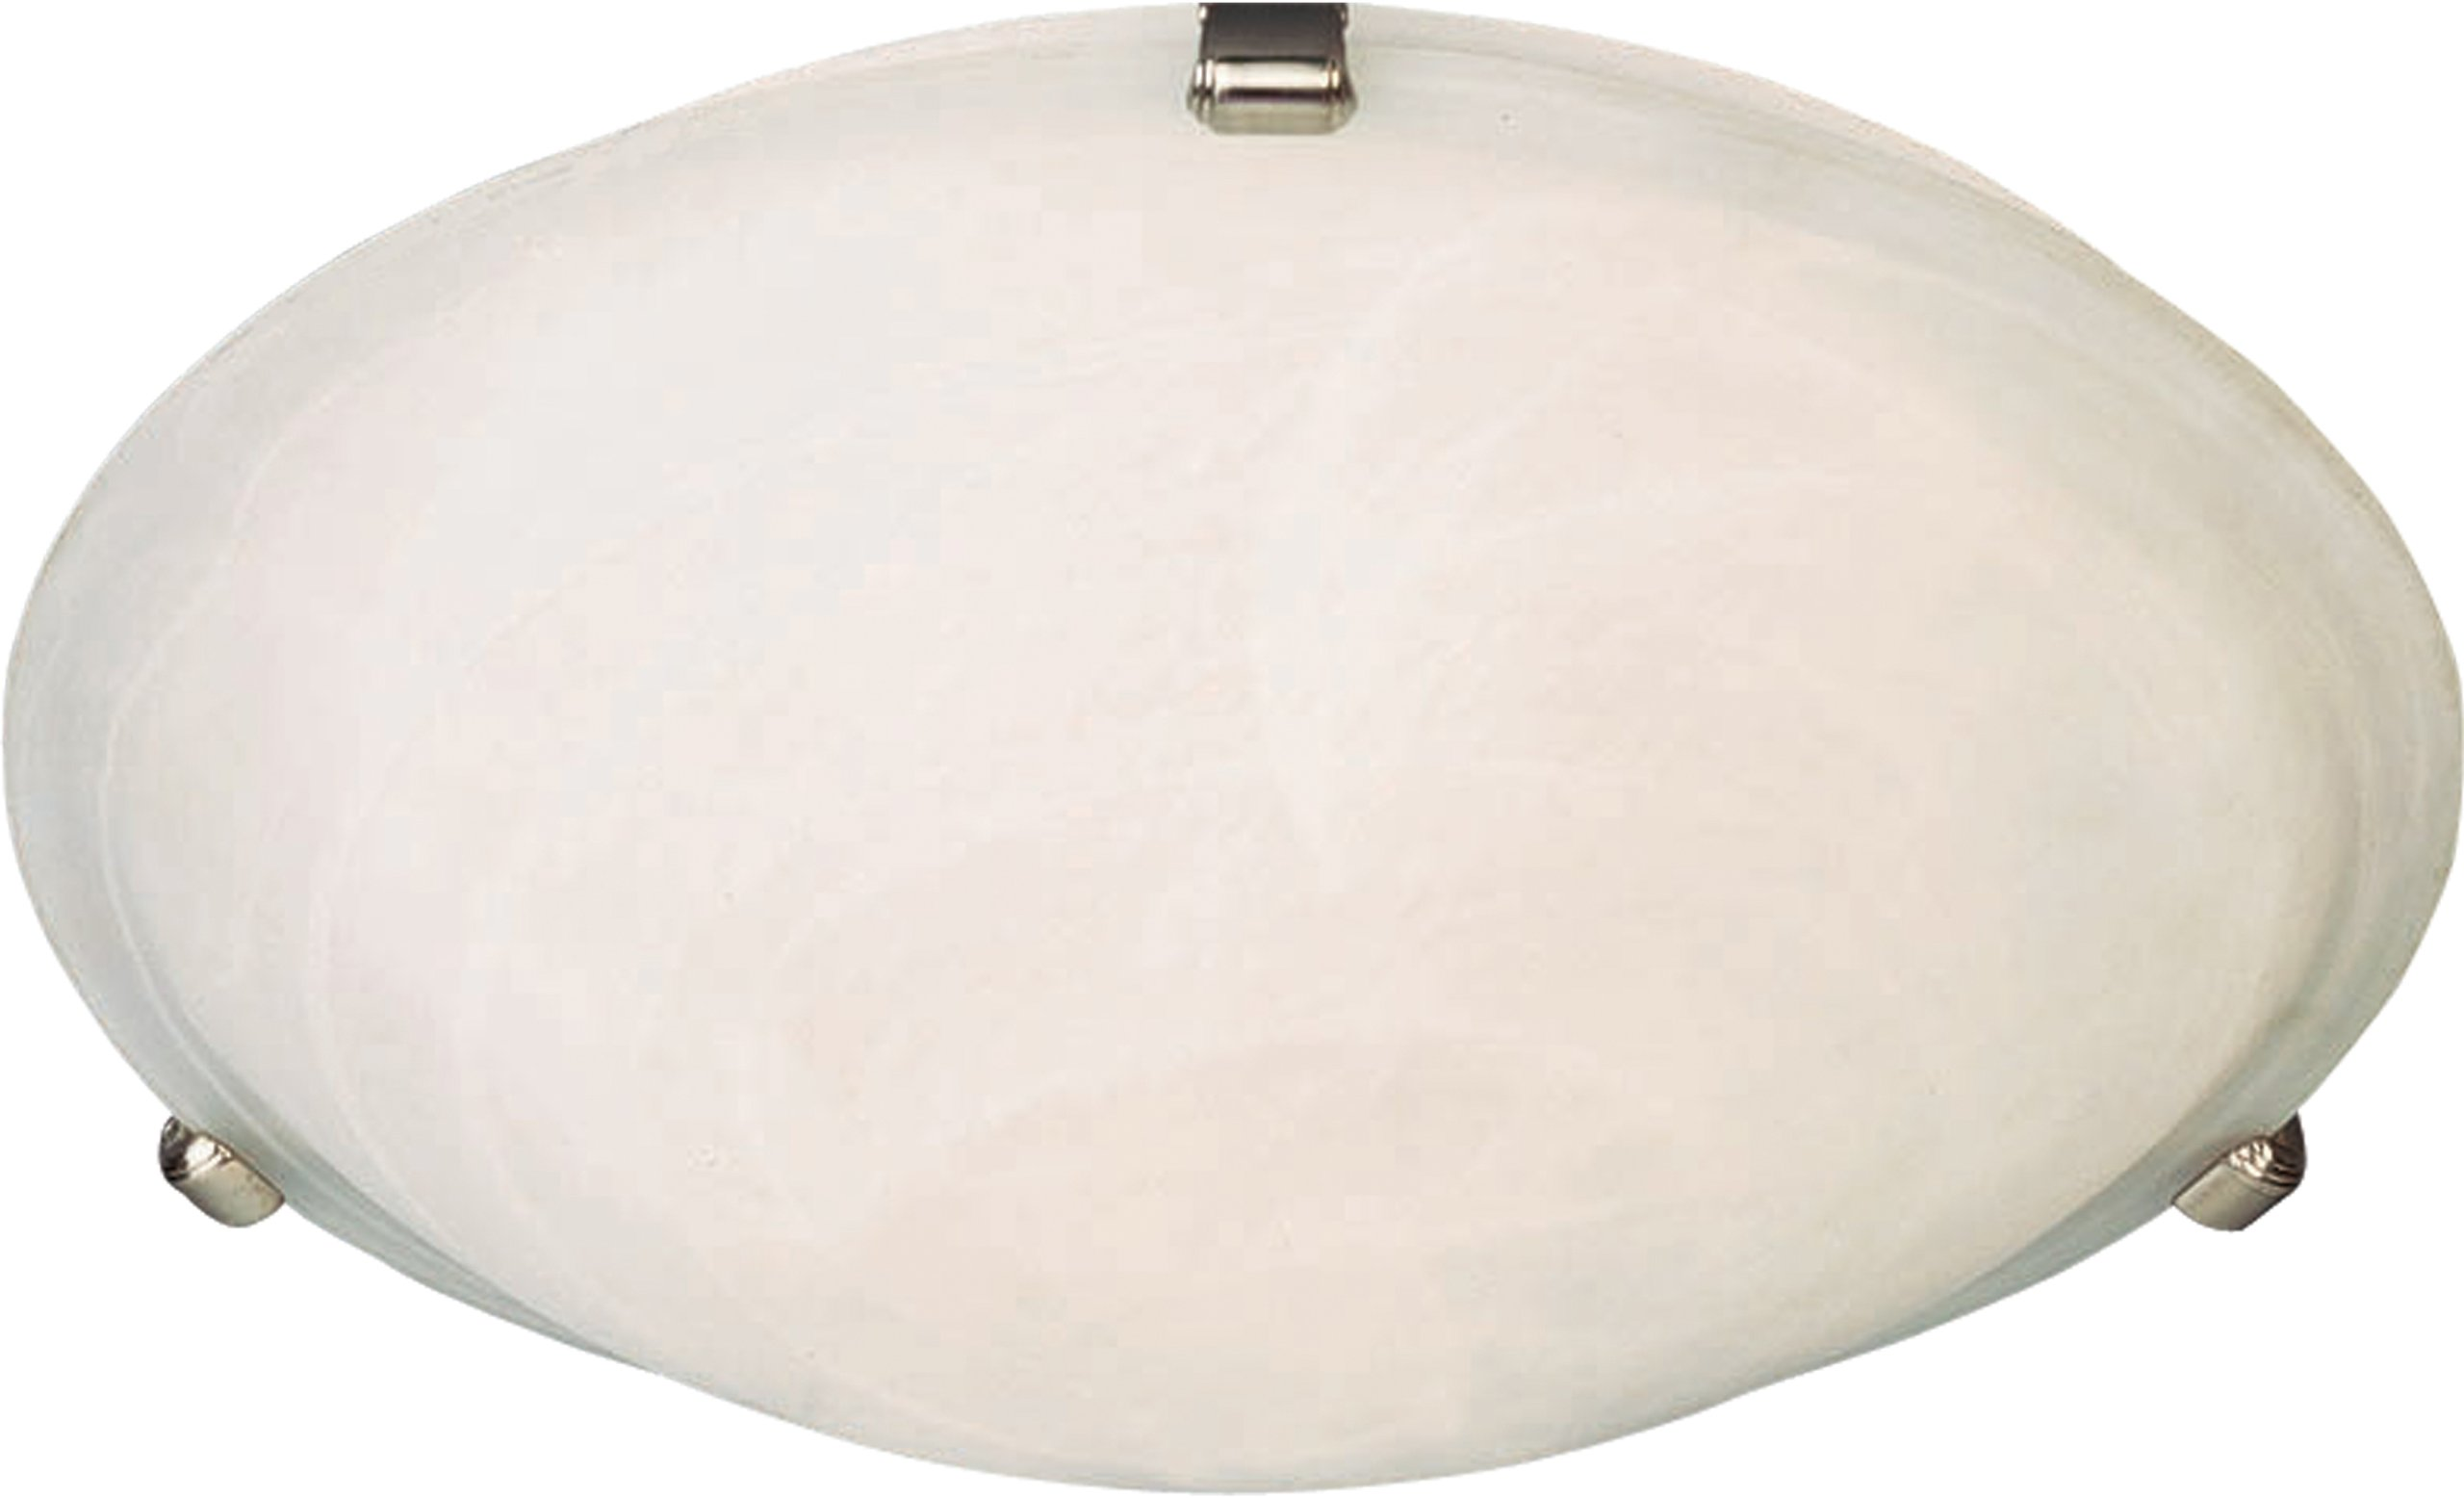 Maxim 82681MRSN Malaga EE 3-Light Flush Mount, Satin Nickel Finish, Marble Glass, GU24 Fluorescent Fluorescent Bulb , 18W Max., Wet Safety Rating, 2700K Color Temp, Glass Shade Material, 1355 Rated Lumens